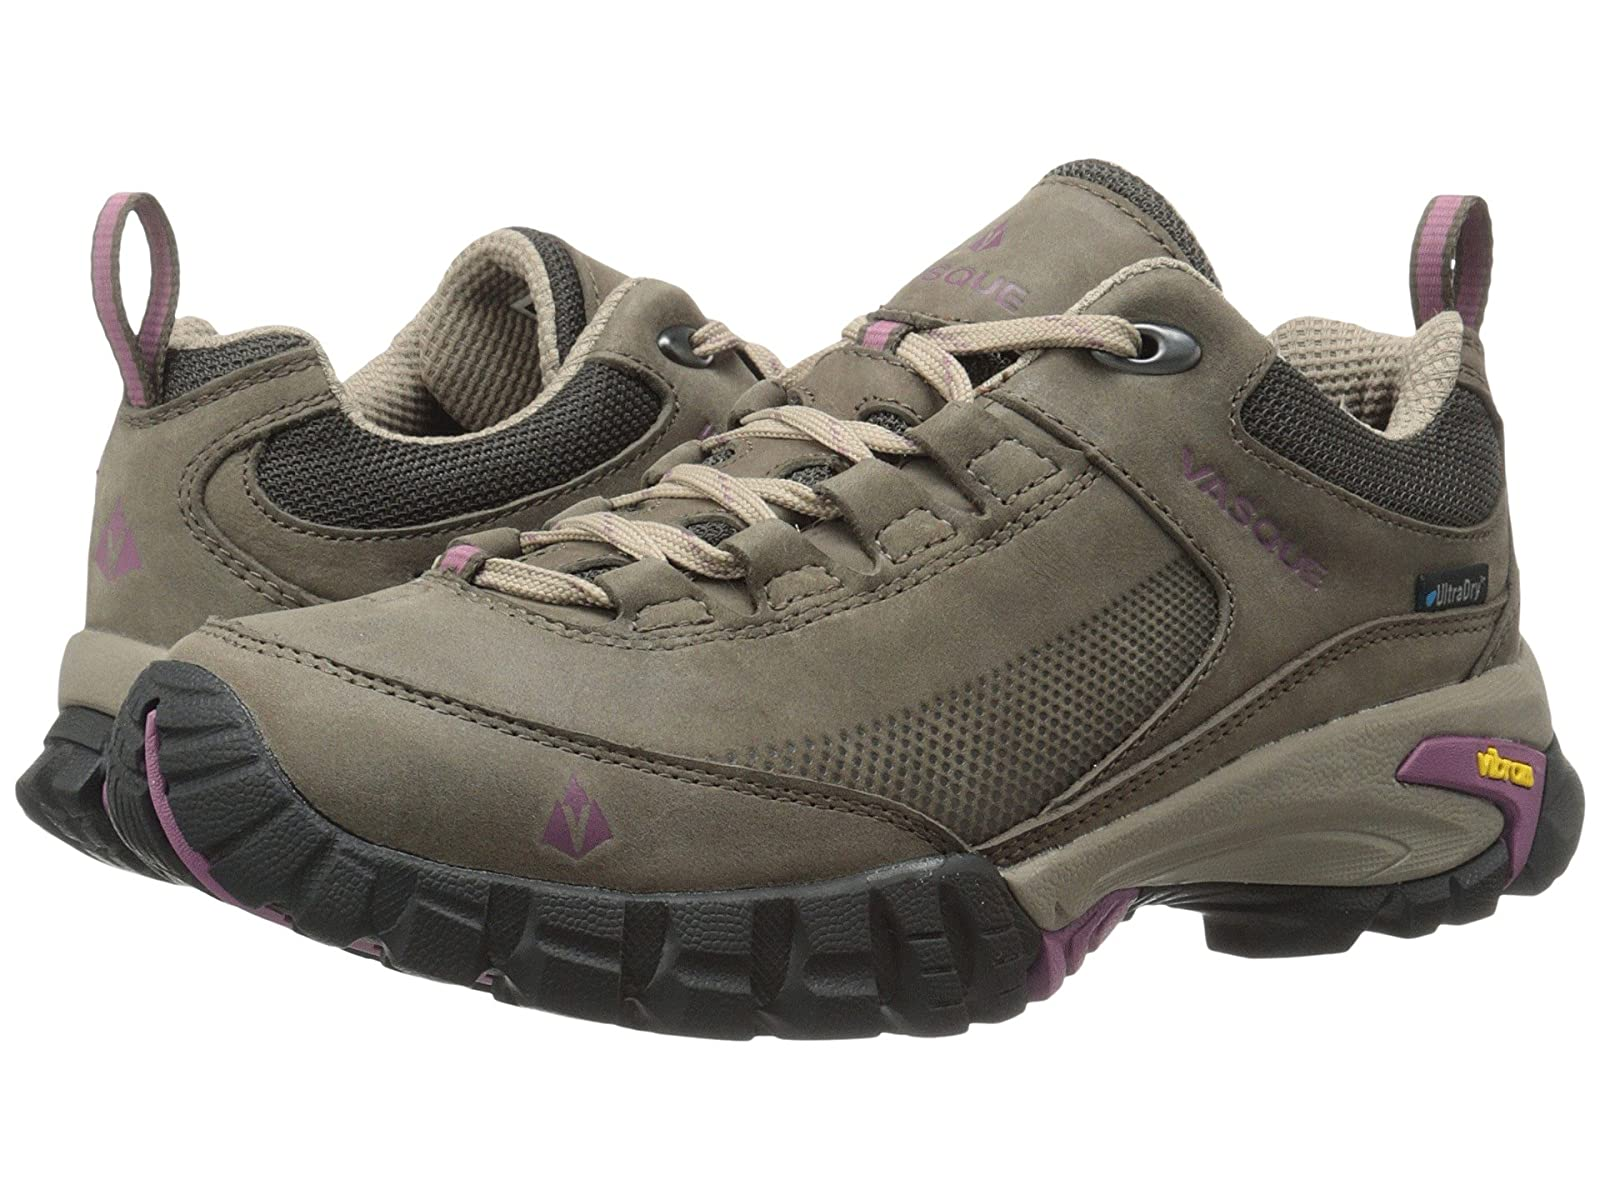 Vasque Different Talus Trek Low UltraDry™- Different Vasque Styles And Styles -Man's/Woman's 5c42ca